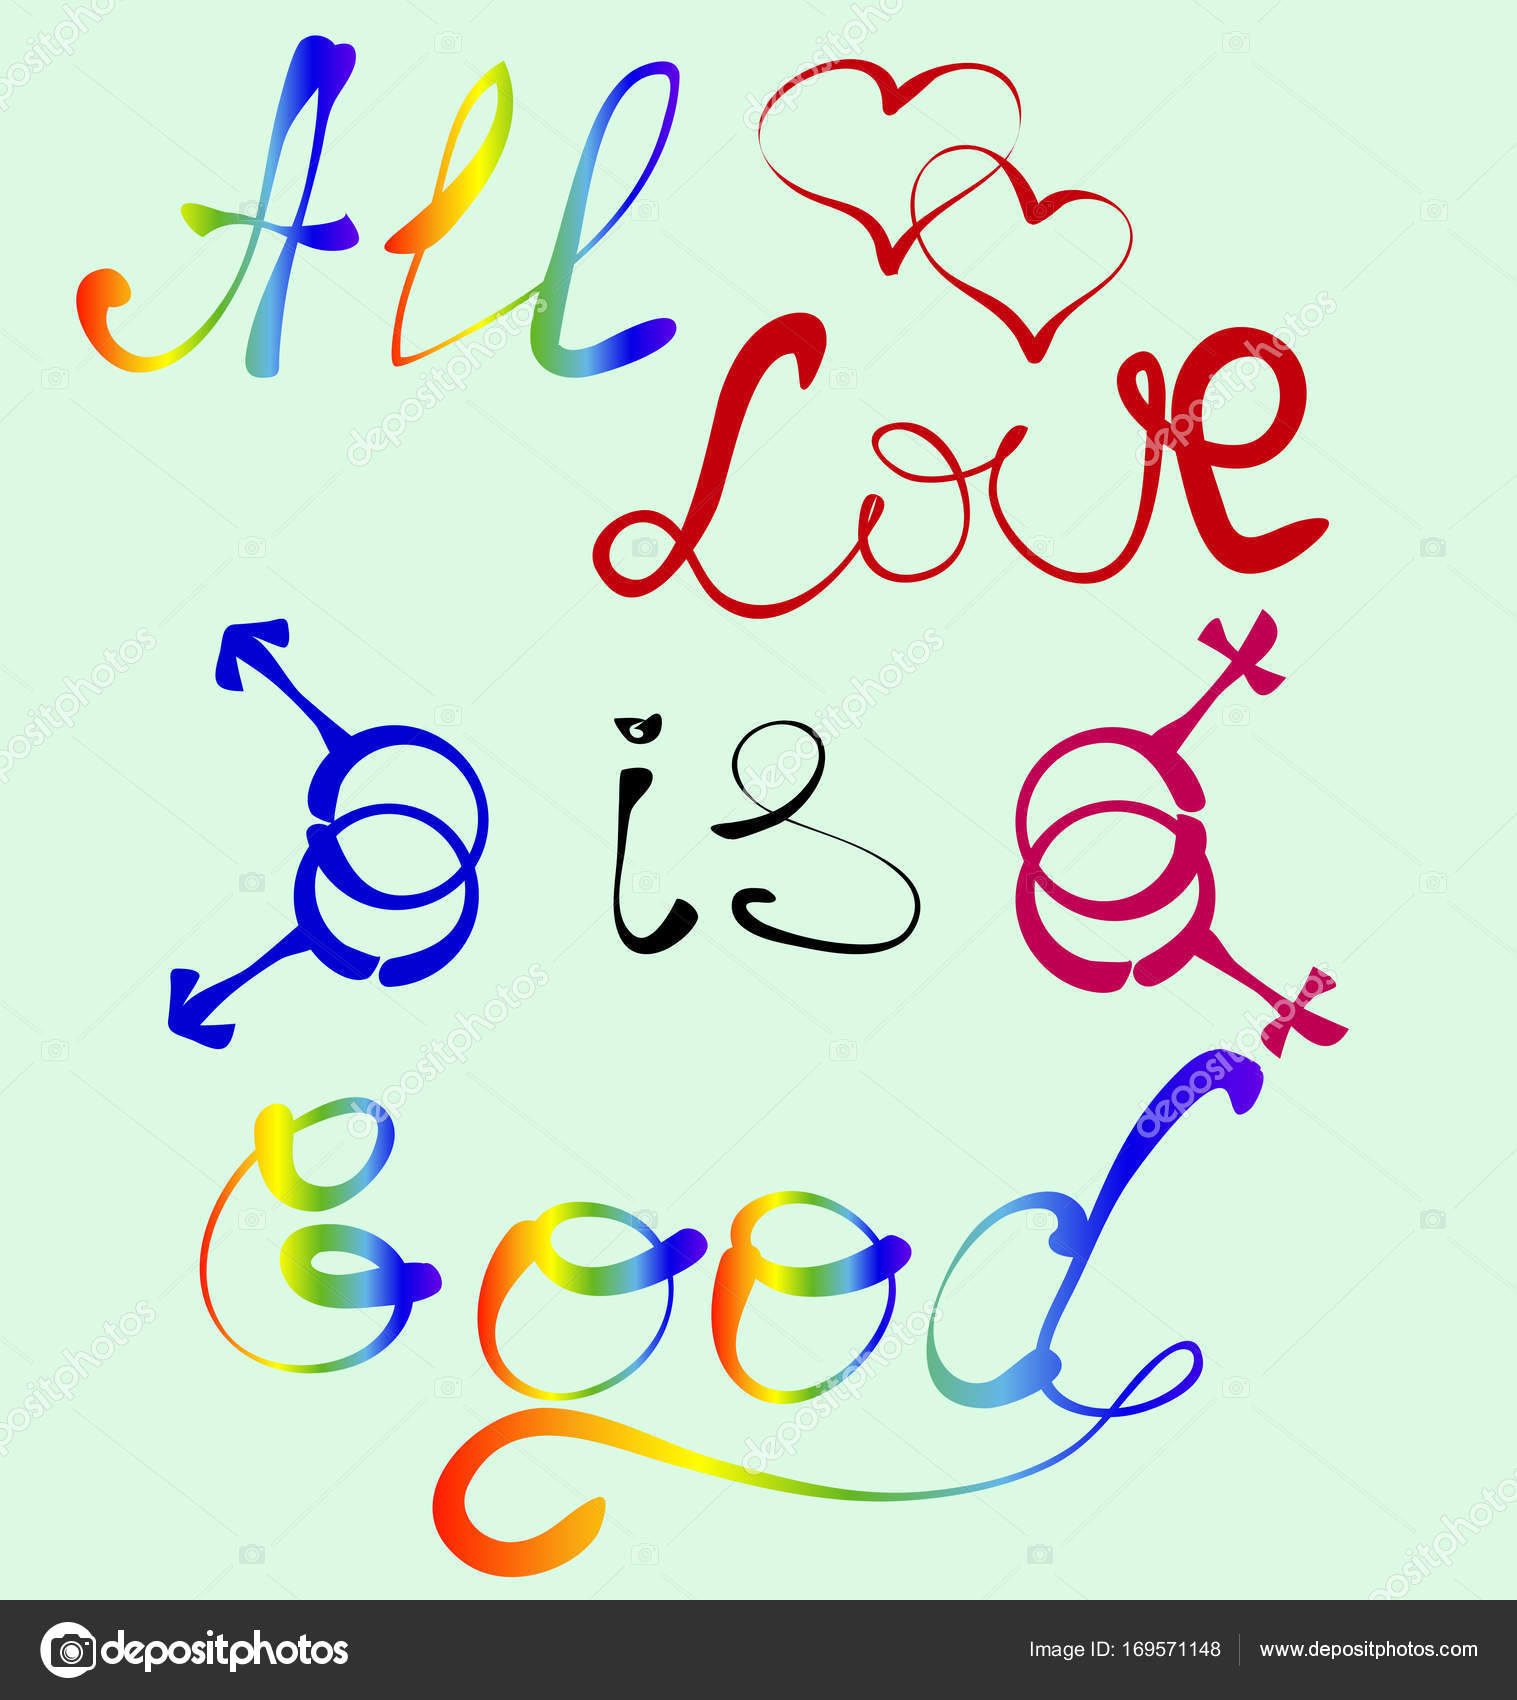 All Love Is Good The Inscription In A Rainbow Font And The Symbols